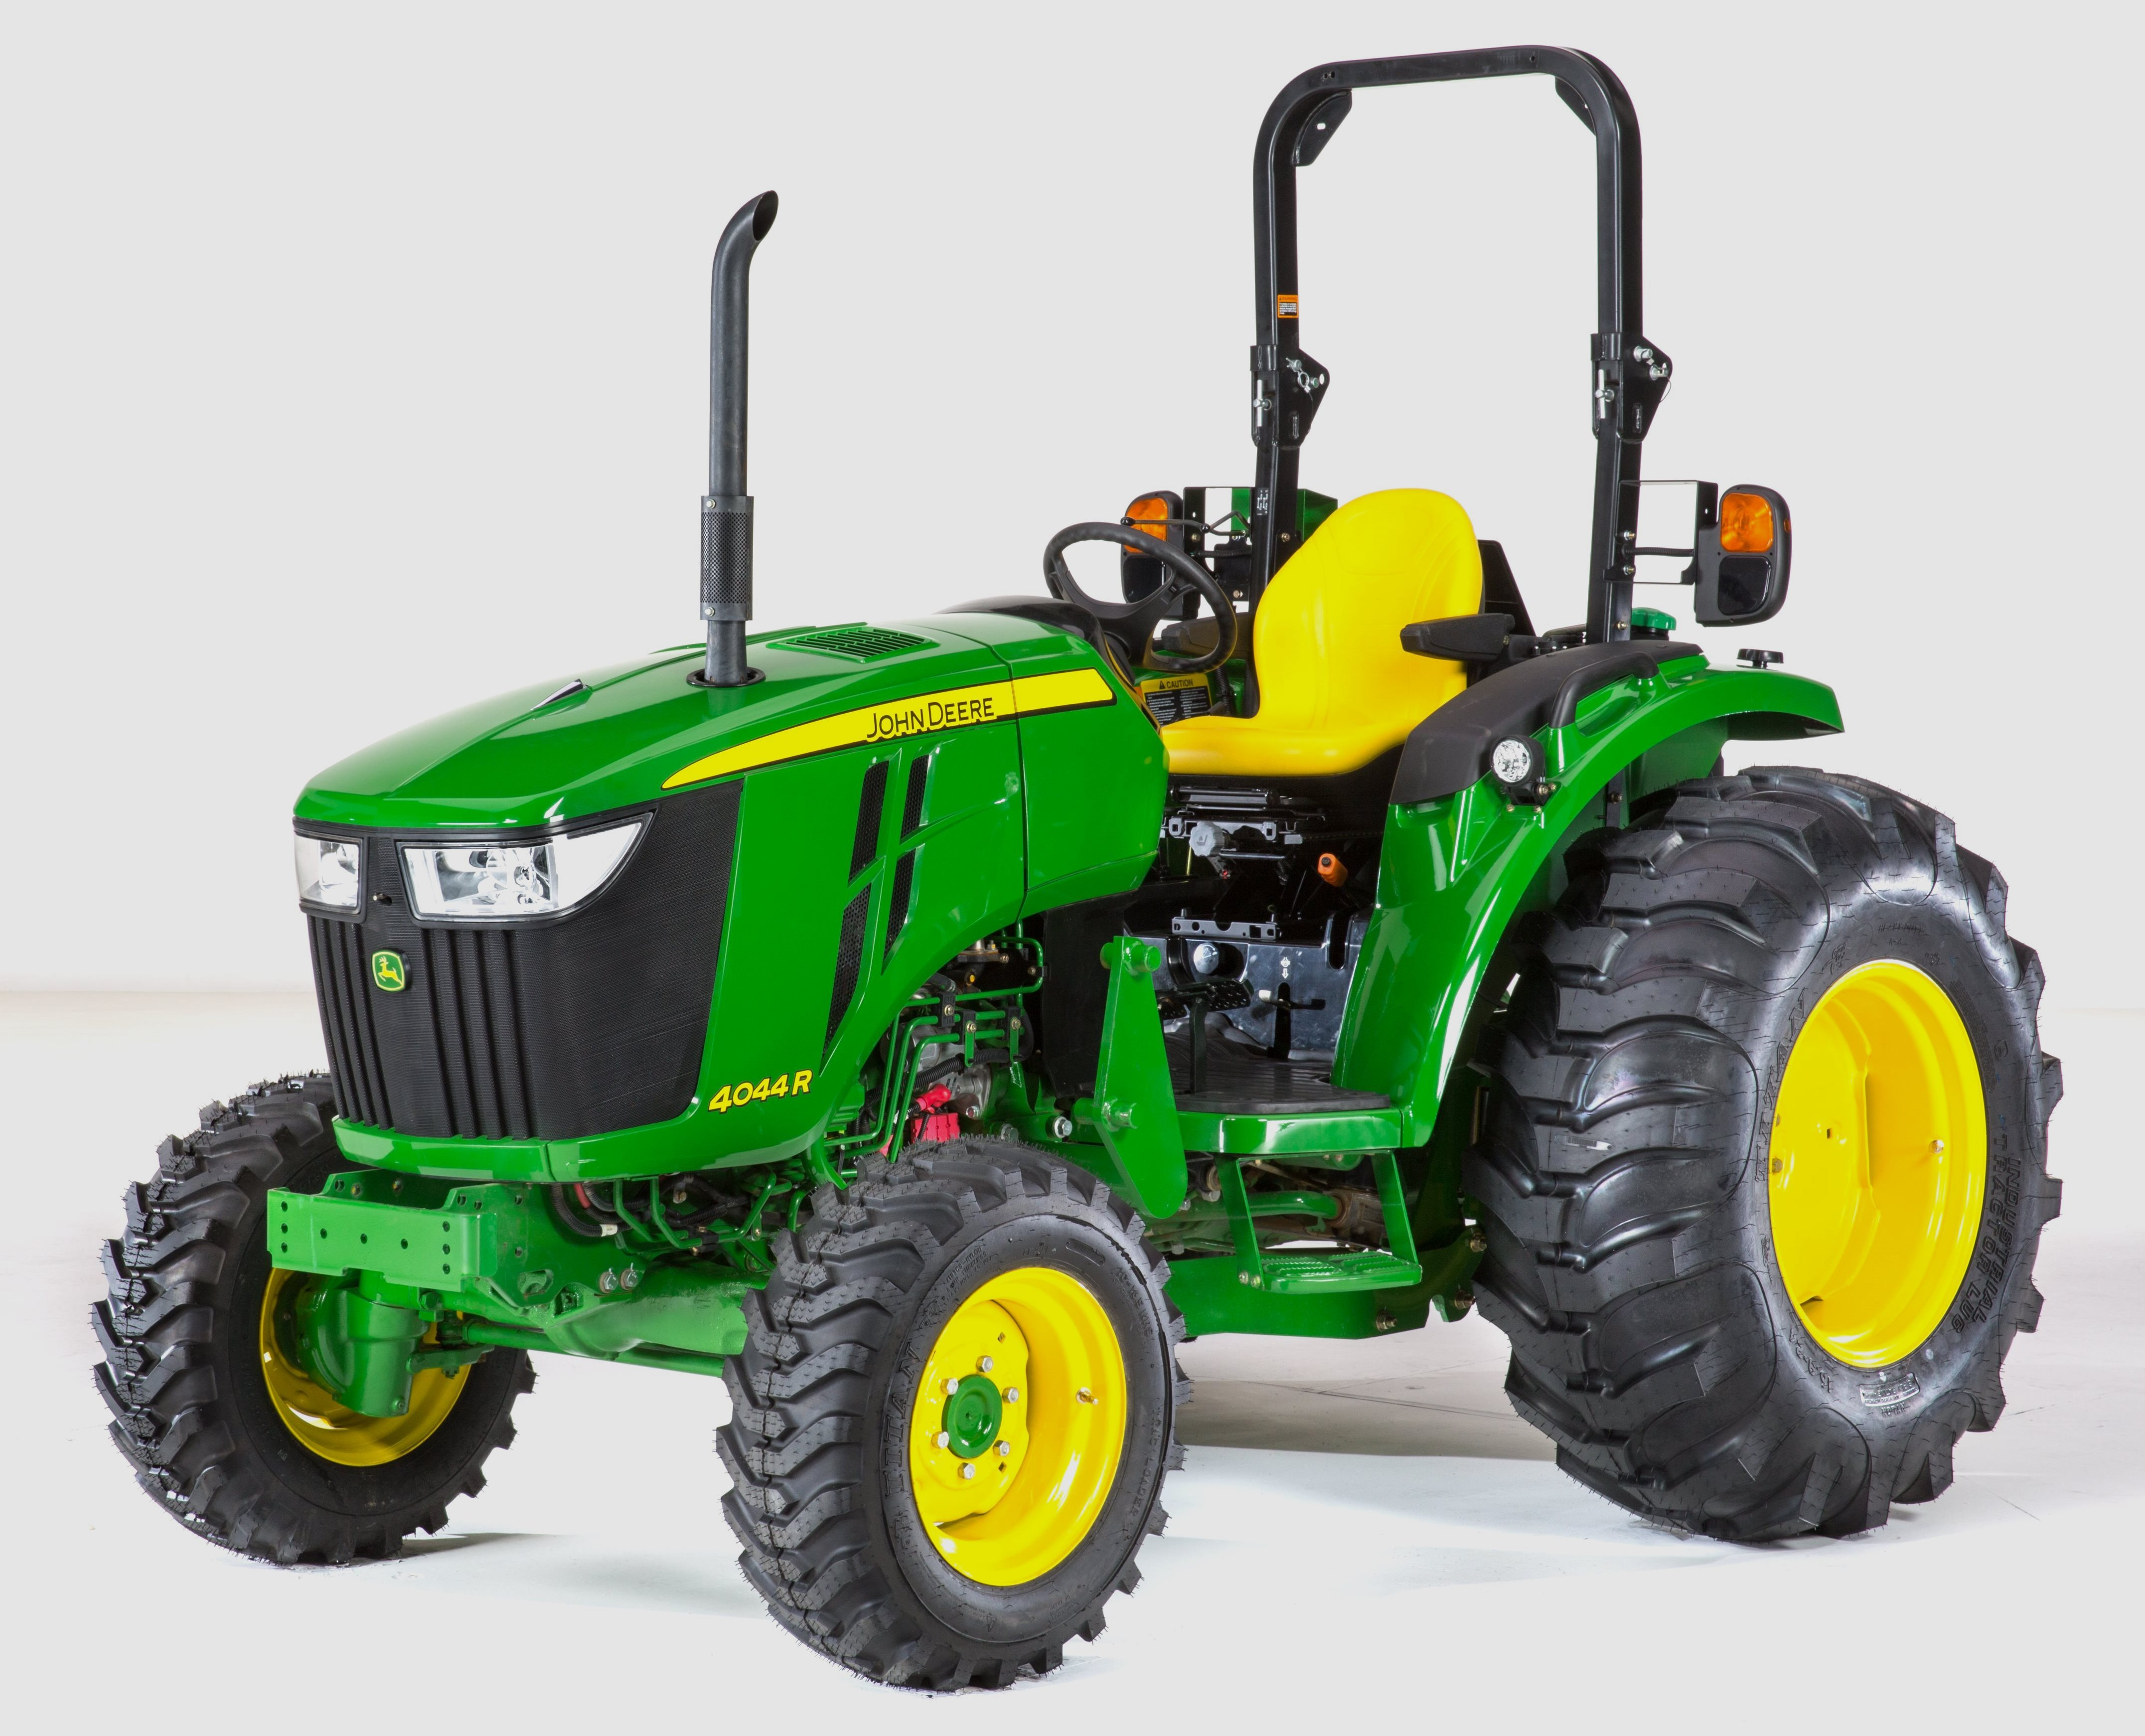 John Deere 4044R Tractor Specification